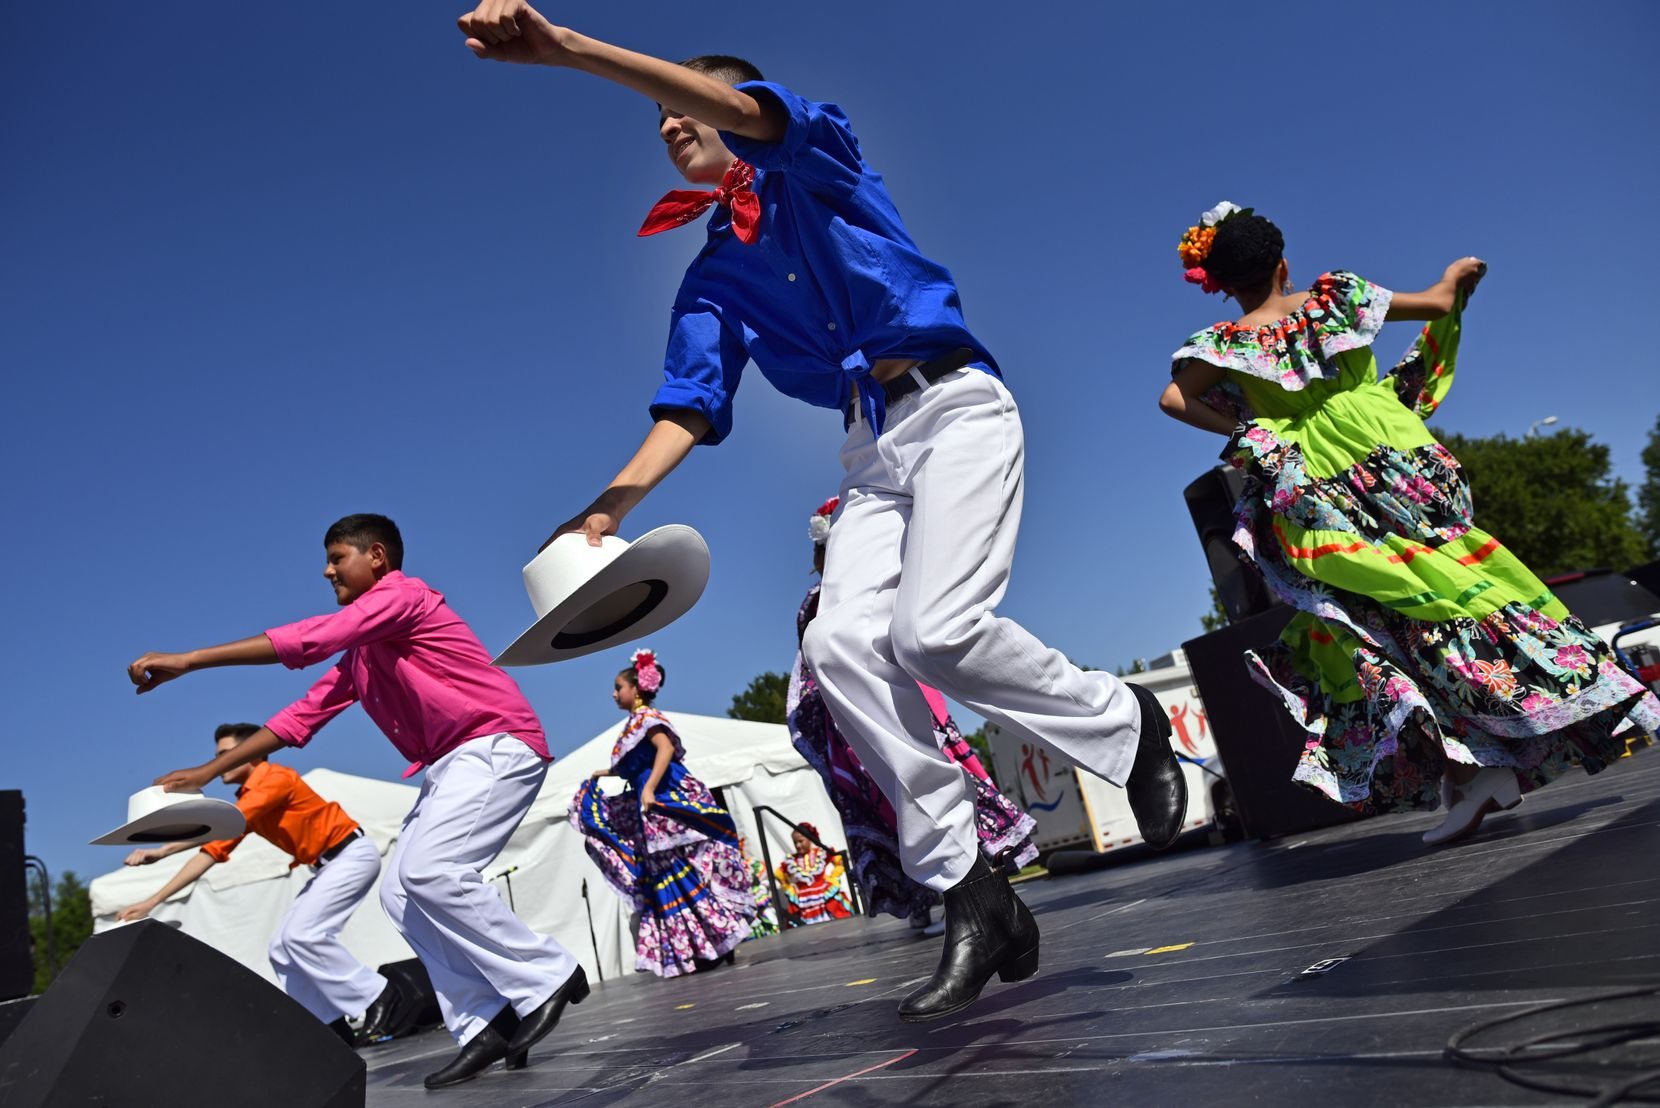 Mesquite's celebration will be online this year with dancing, music and speeches presented on the city's Facebook page.